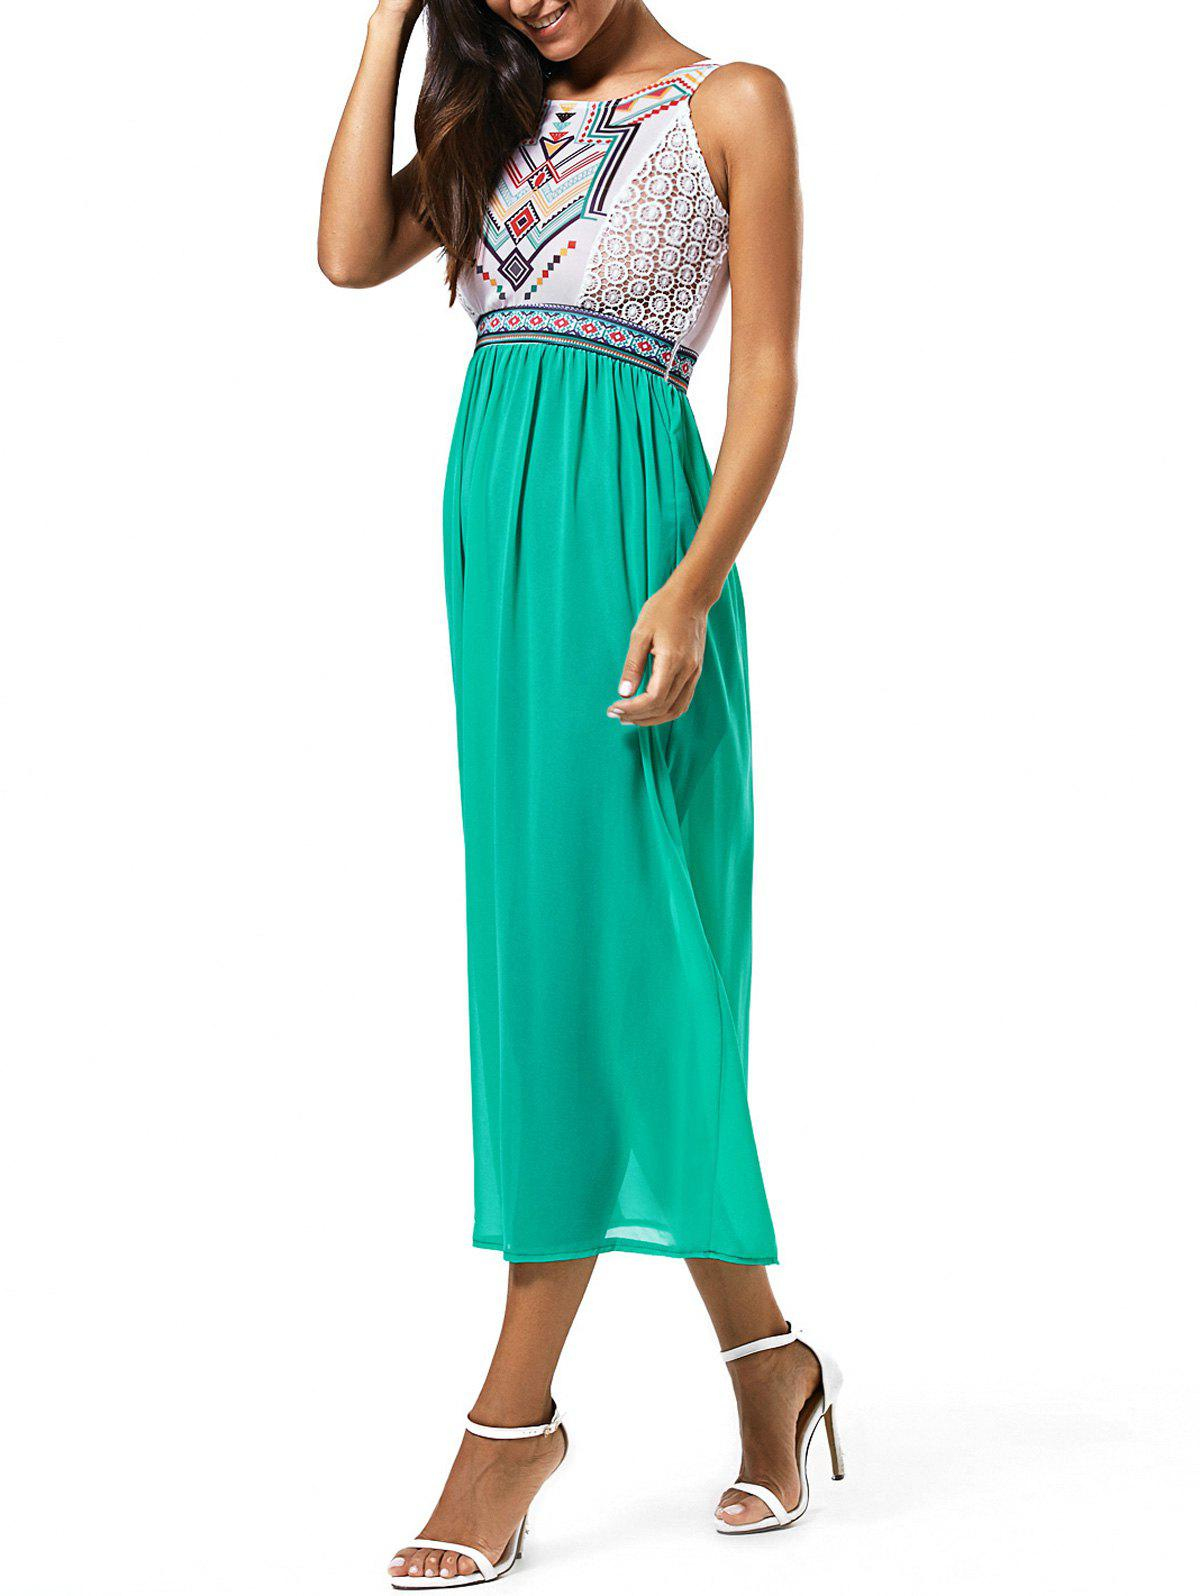 High Waist Ethnic Print Chiffon Dress - GREEN S